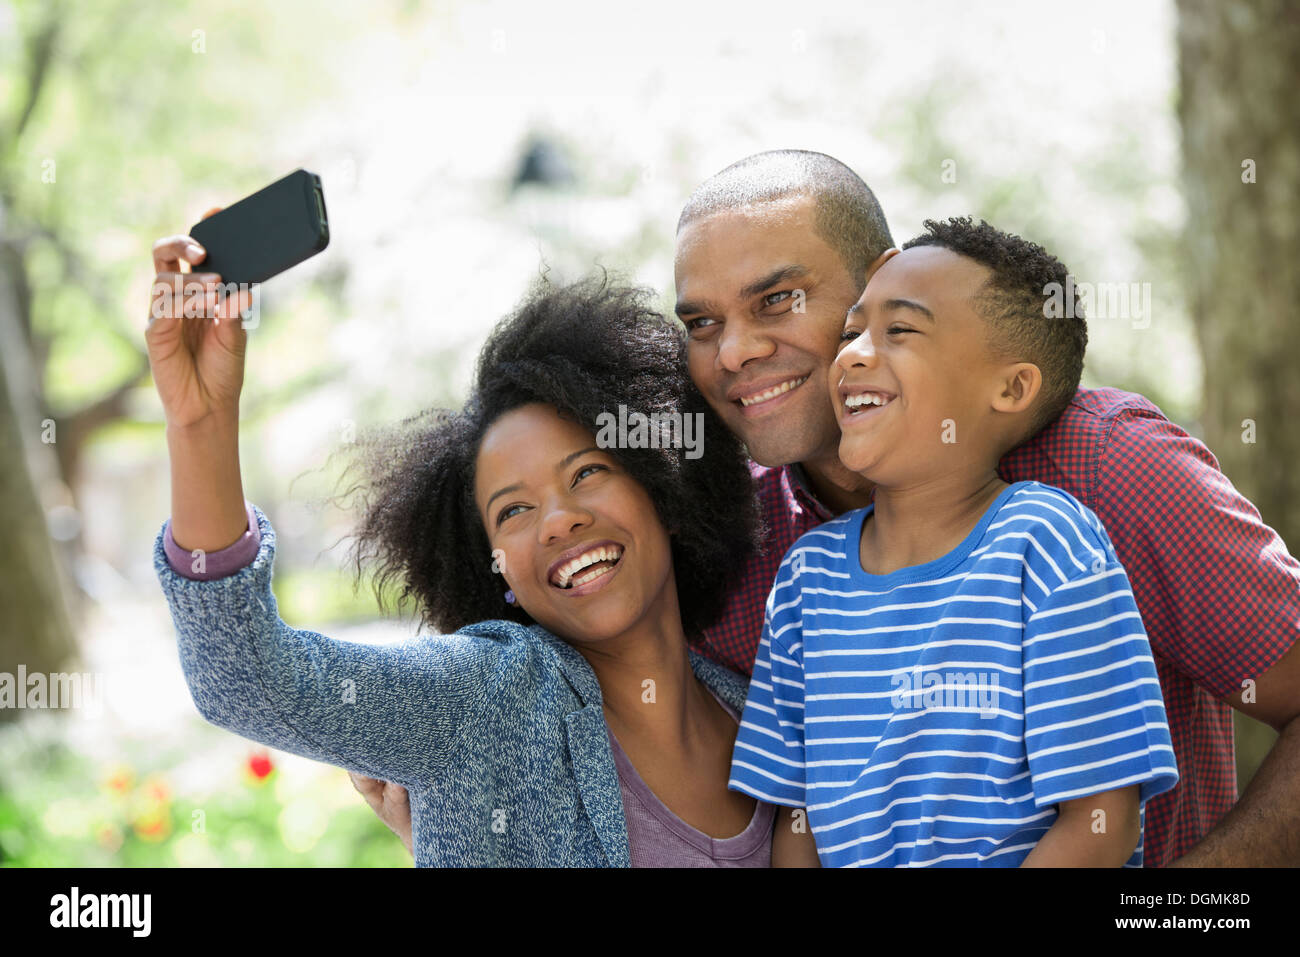 Two adults and a young boy taking photographs with a smart phone. - Stock Image